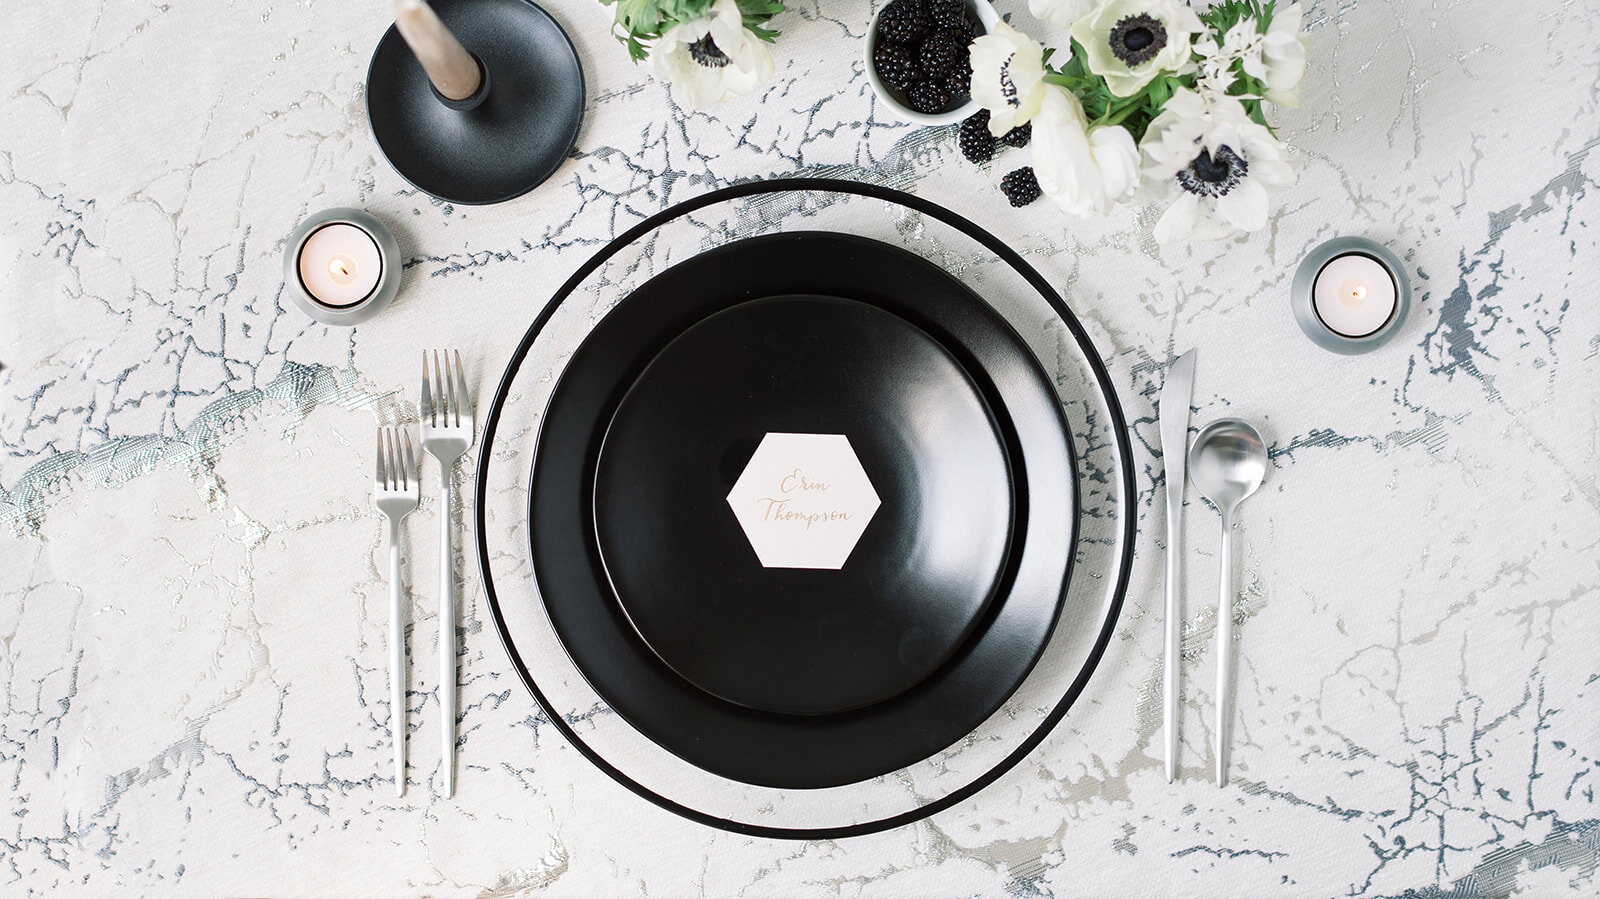 Wedding and event rentals Norfolk, Williamsburg and Richmond, Virginia. Tabletop wedding and party rentals. Chargers, modern plates, glassware, and flatware available.